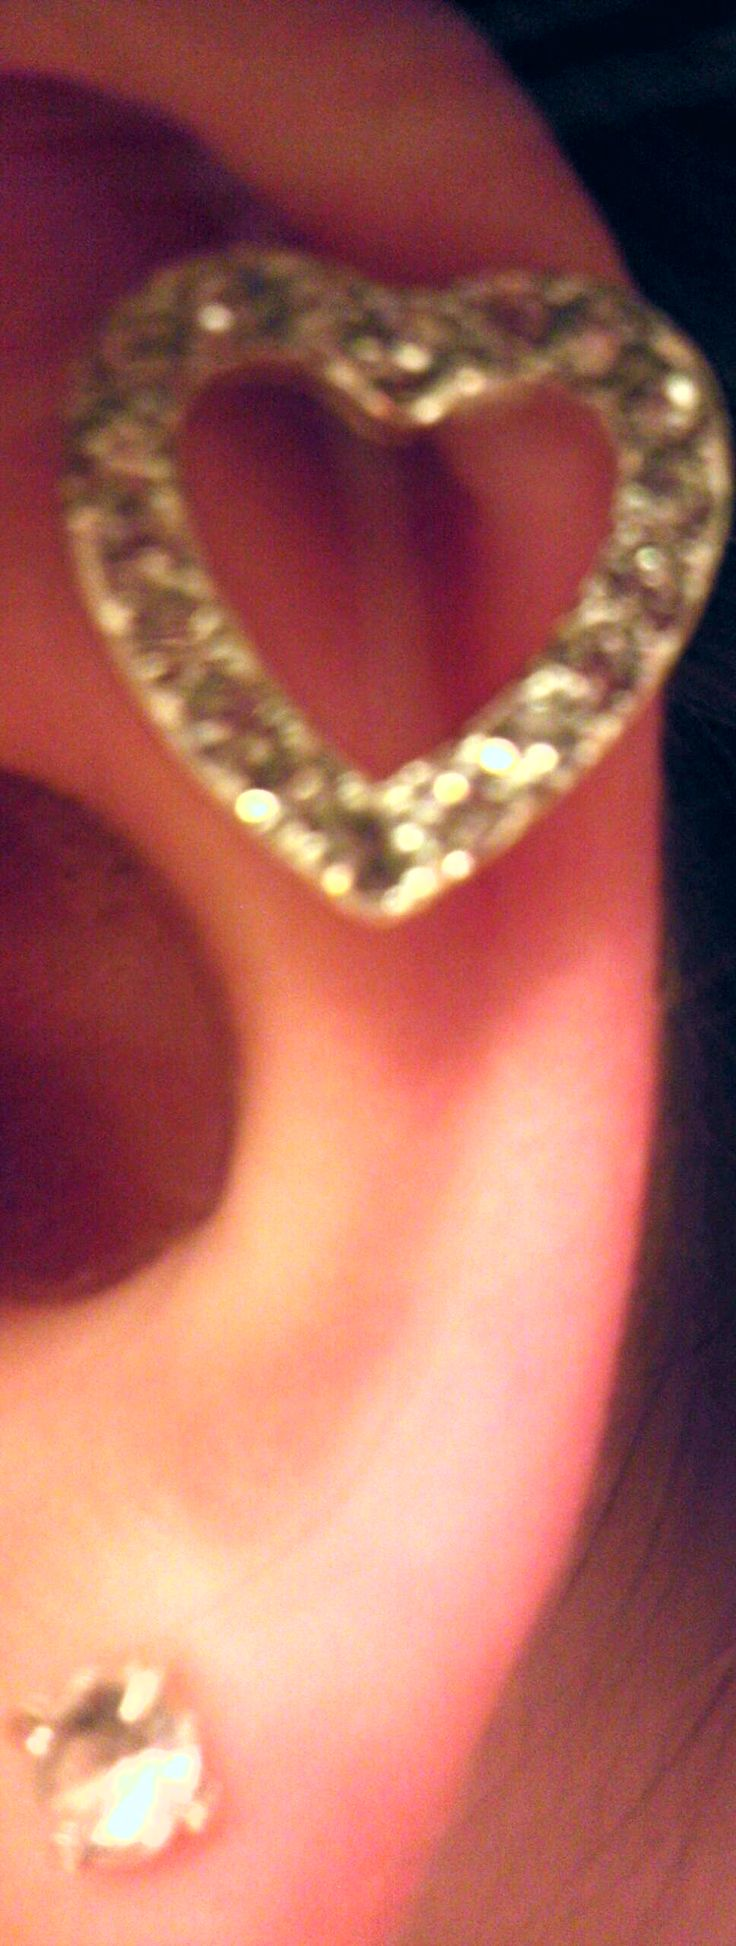 best p i e r c e d images on Pinterest Peircings Piercing and